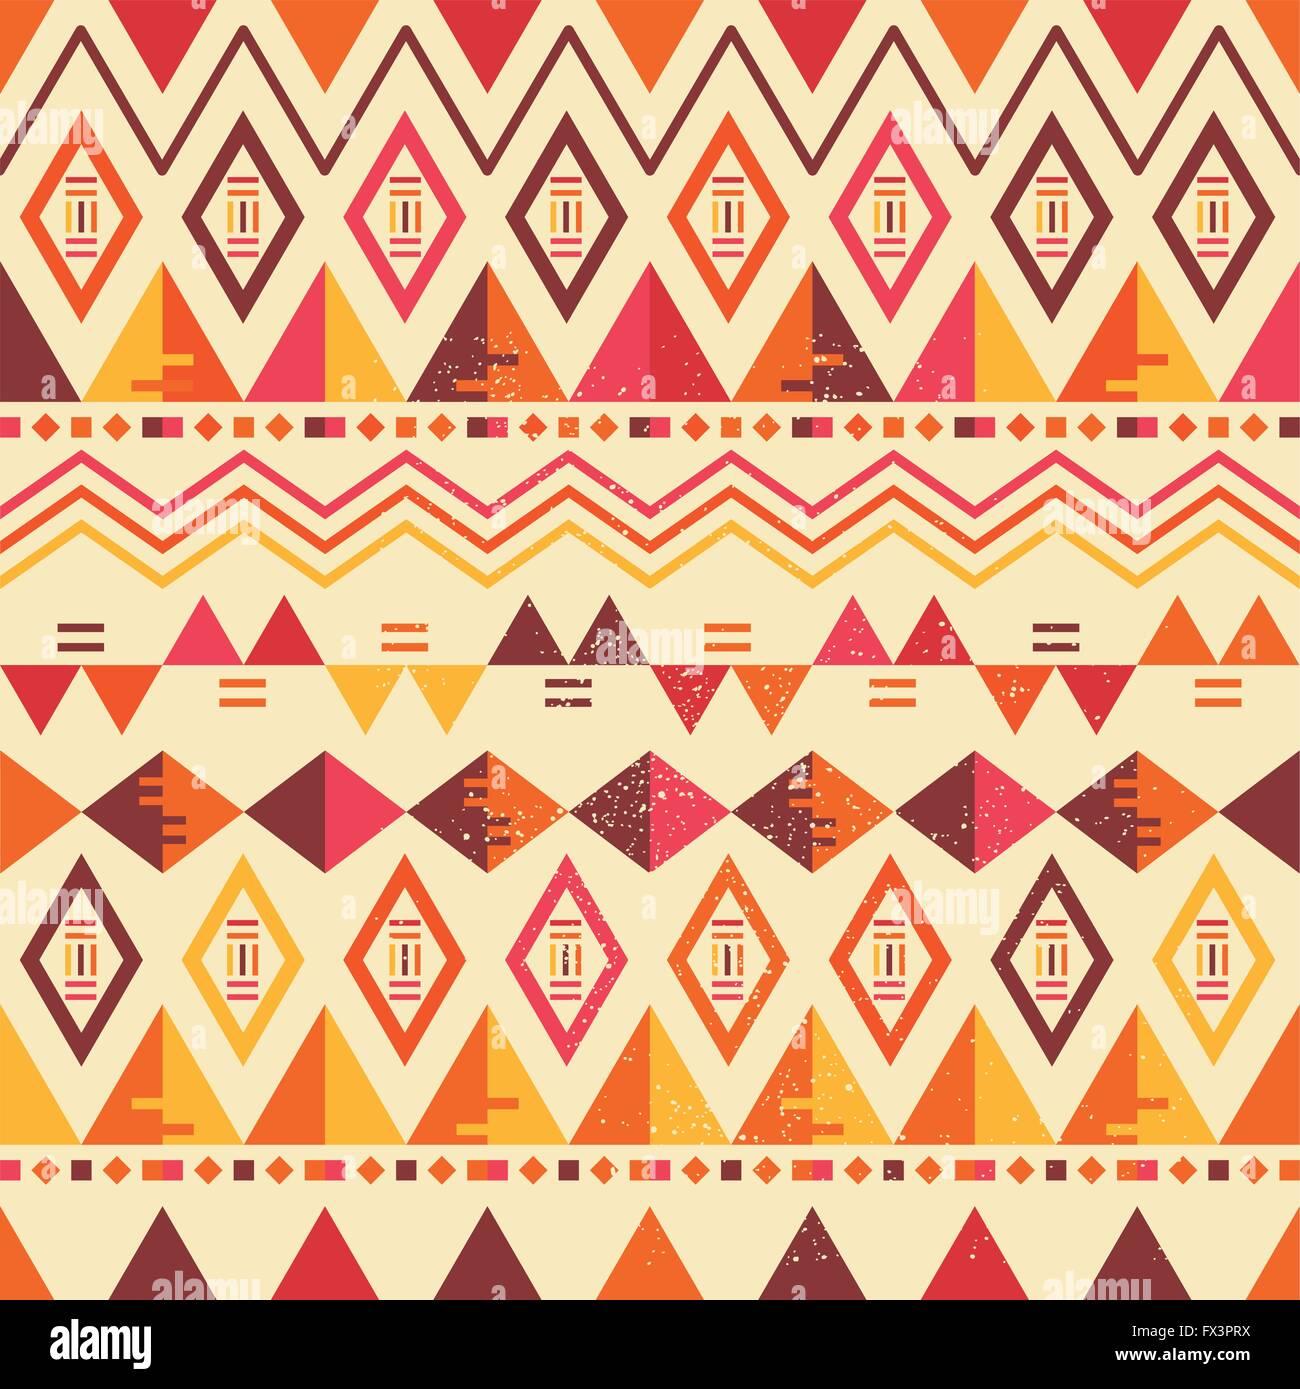 Seamless Vector Geometric Pattern. Repeat pattern vector illustration. - Stock Image